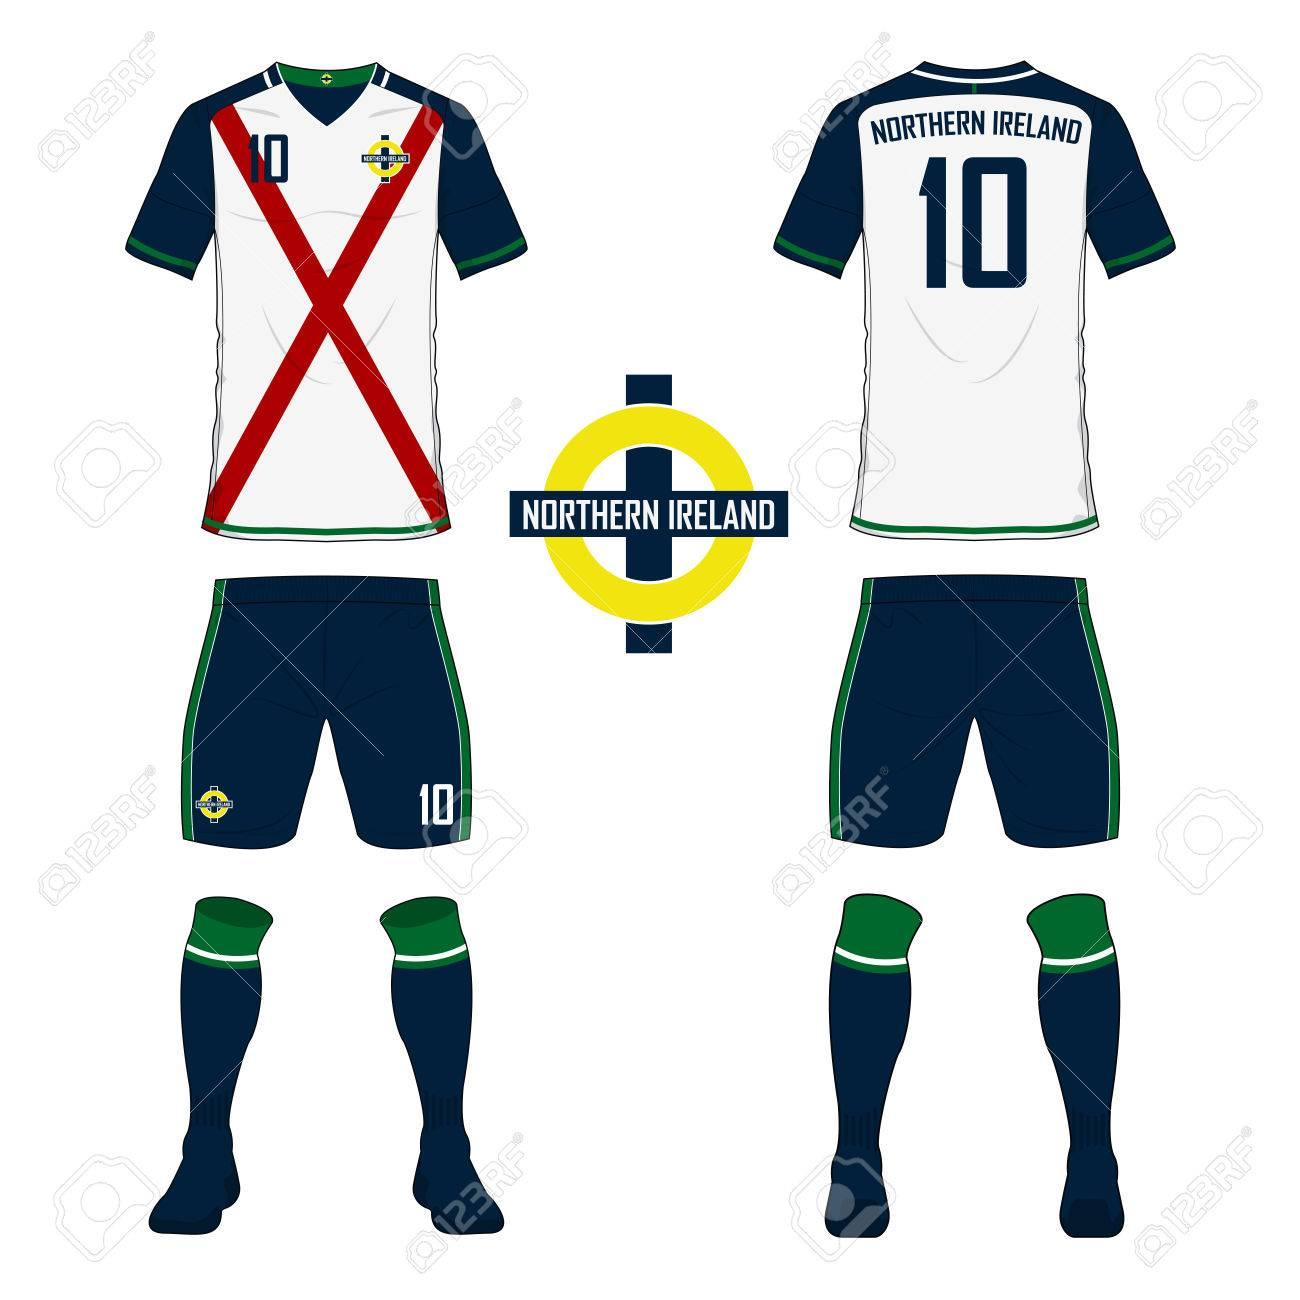 0ae911a6299 Set of soccer jersey or football kit template for Northern Ireland national  football team. Front